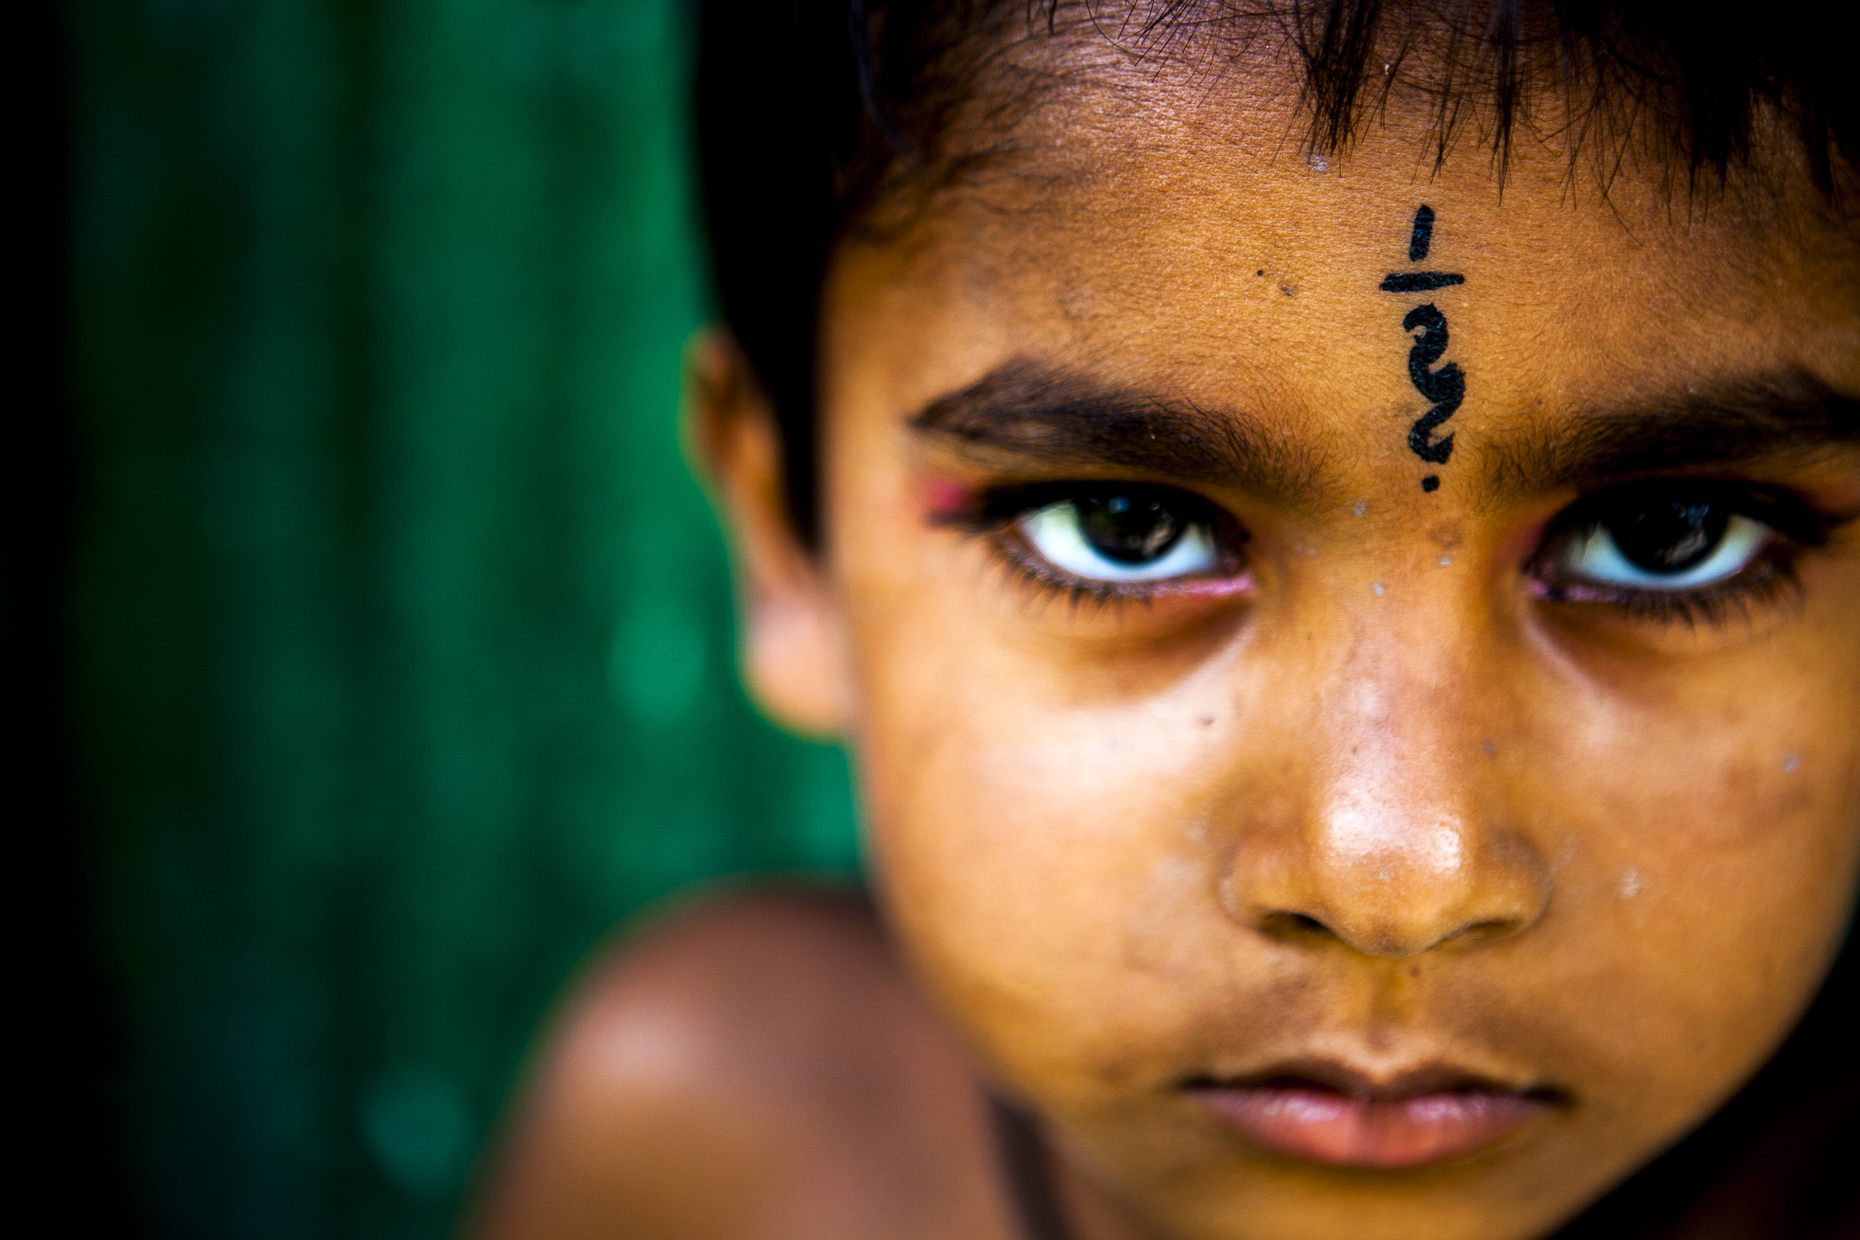 Child in rural Bangladesh